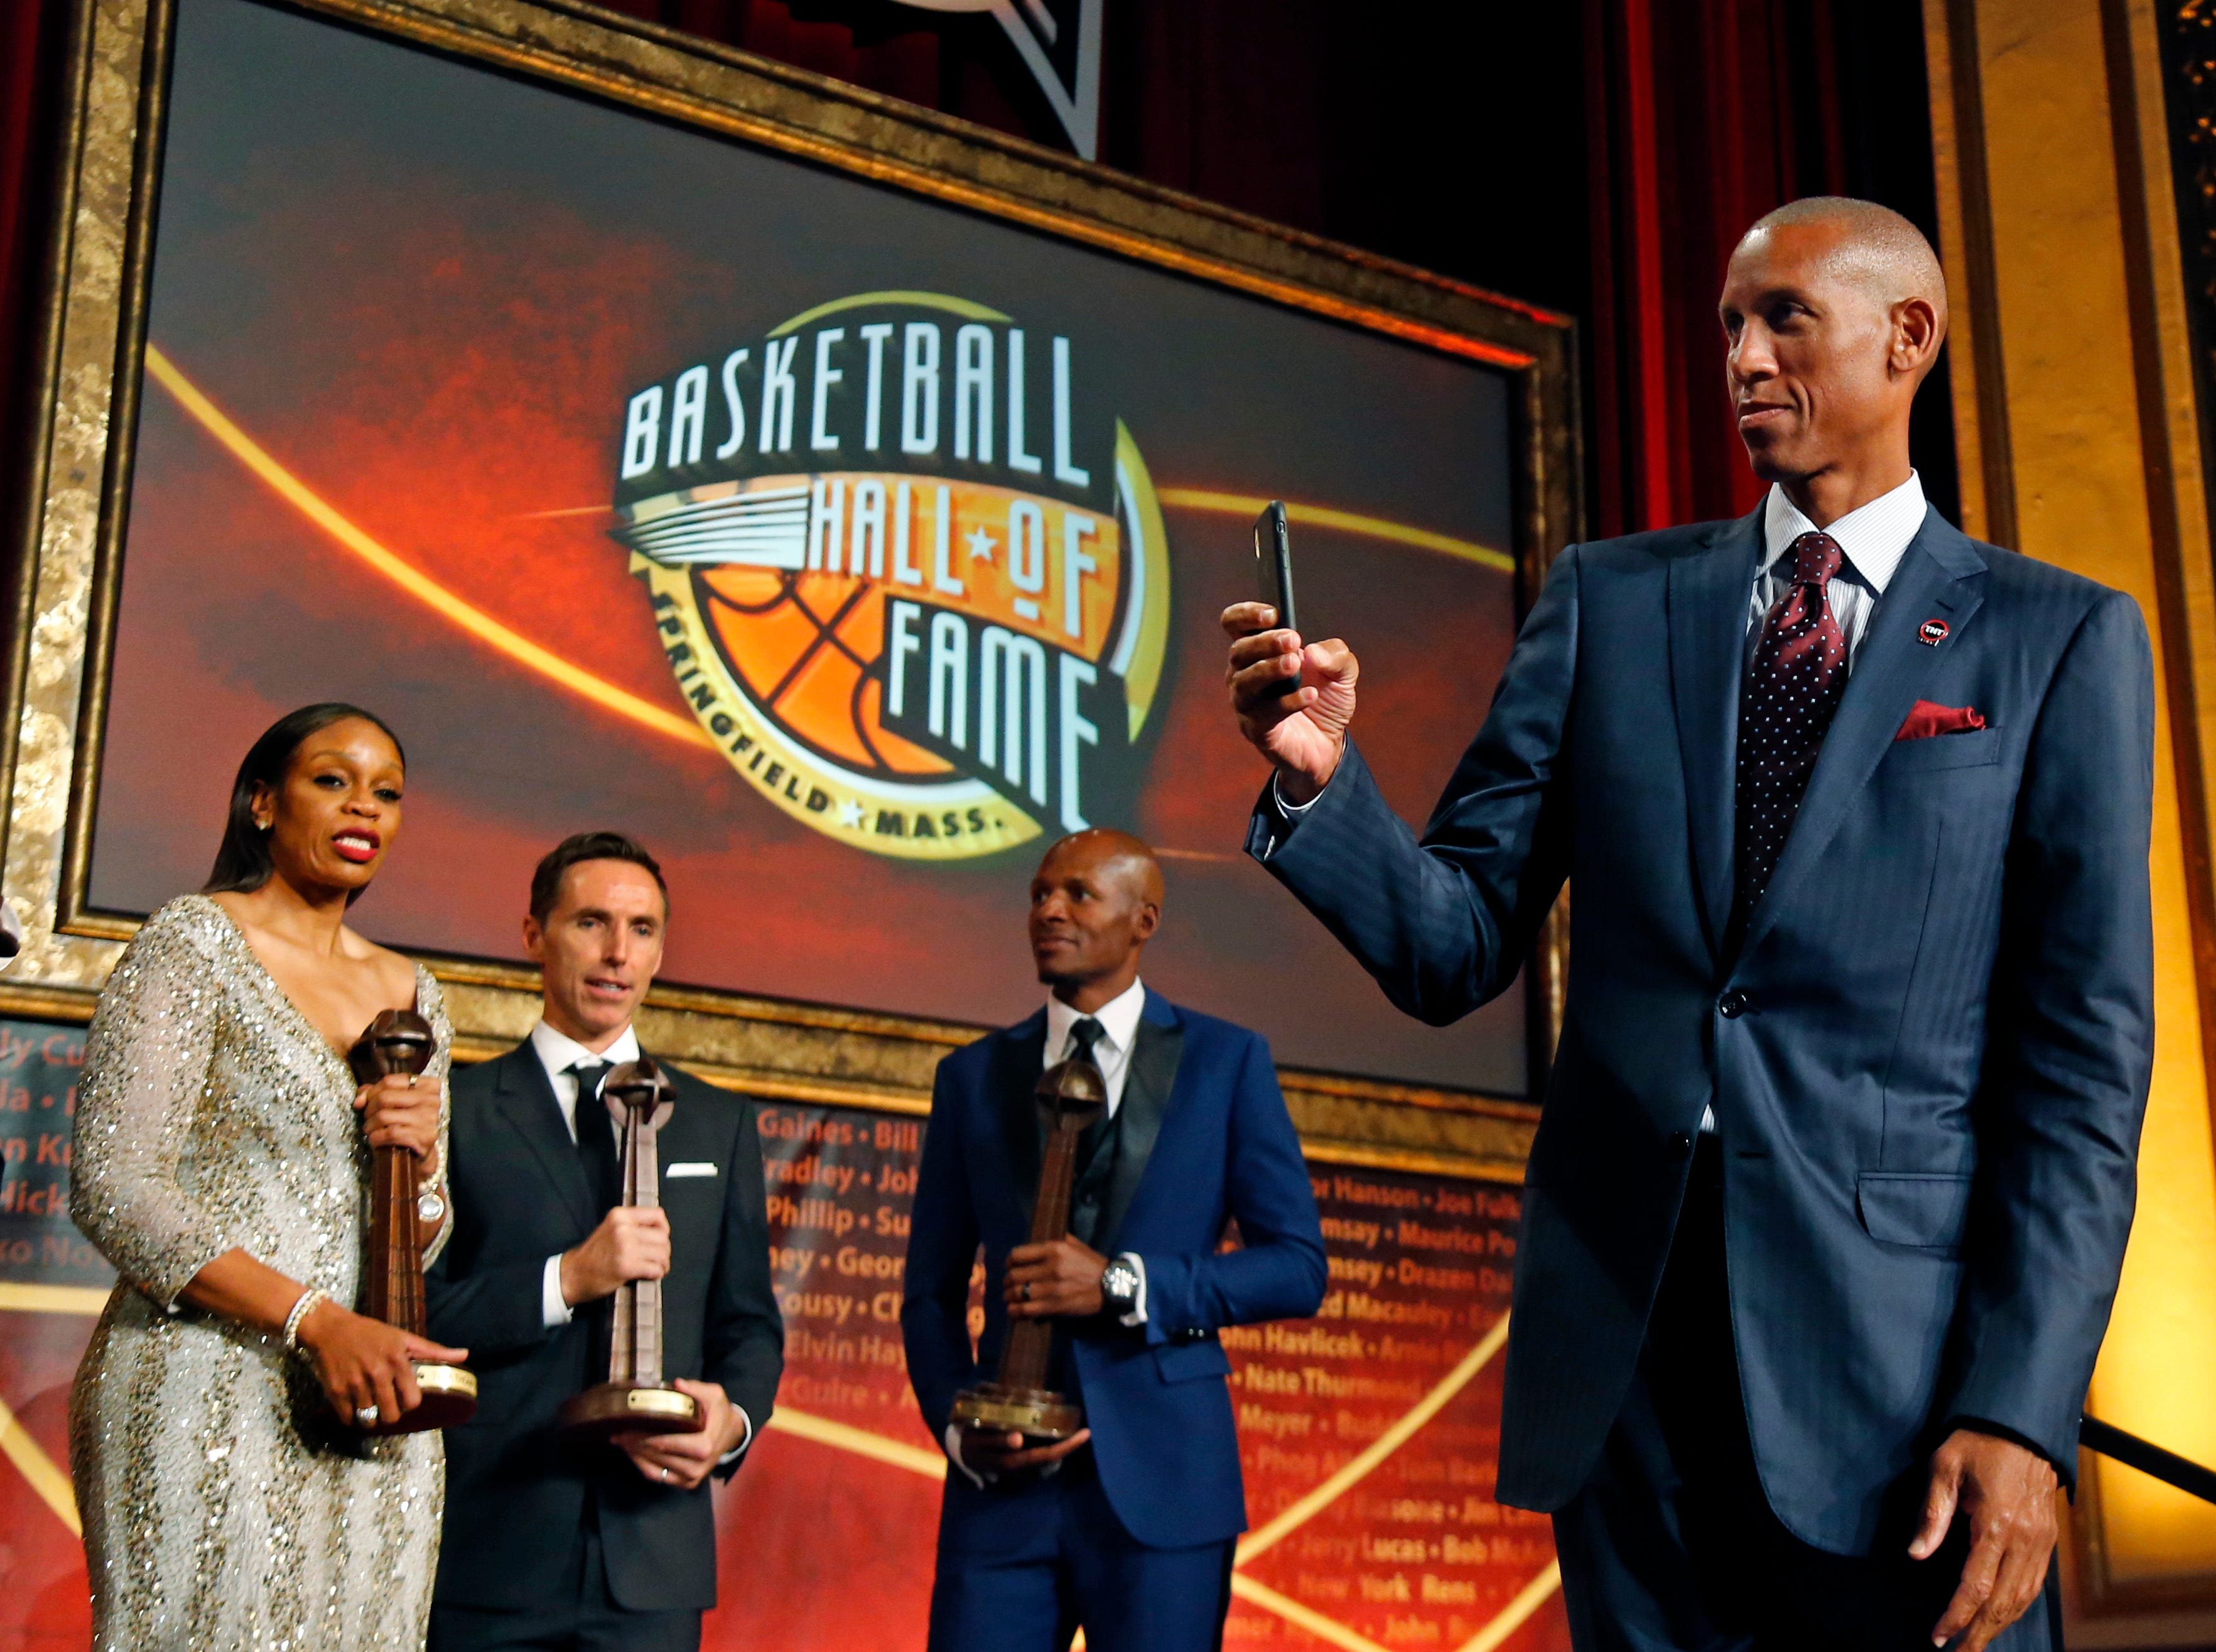 Reggie Miller, right, takes pictures with his phone as 2018 inductees, from left, Tina Thompson, Steve Nash and Ray Allen stand with their trophies after ceremonies at the Basketball Hall of Fame.